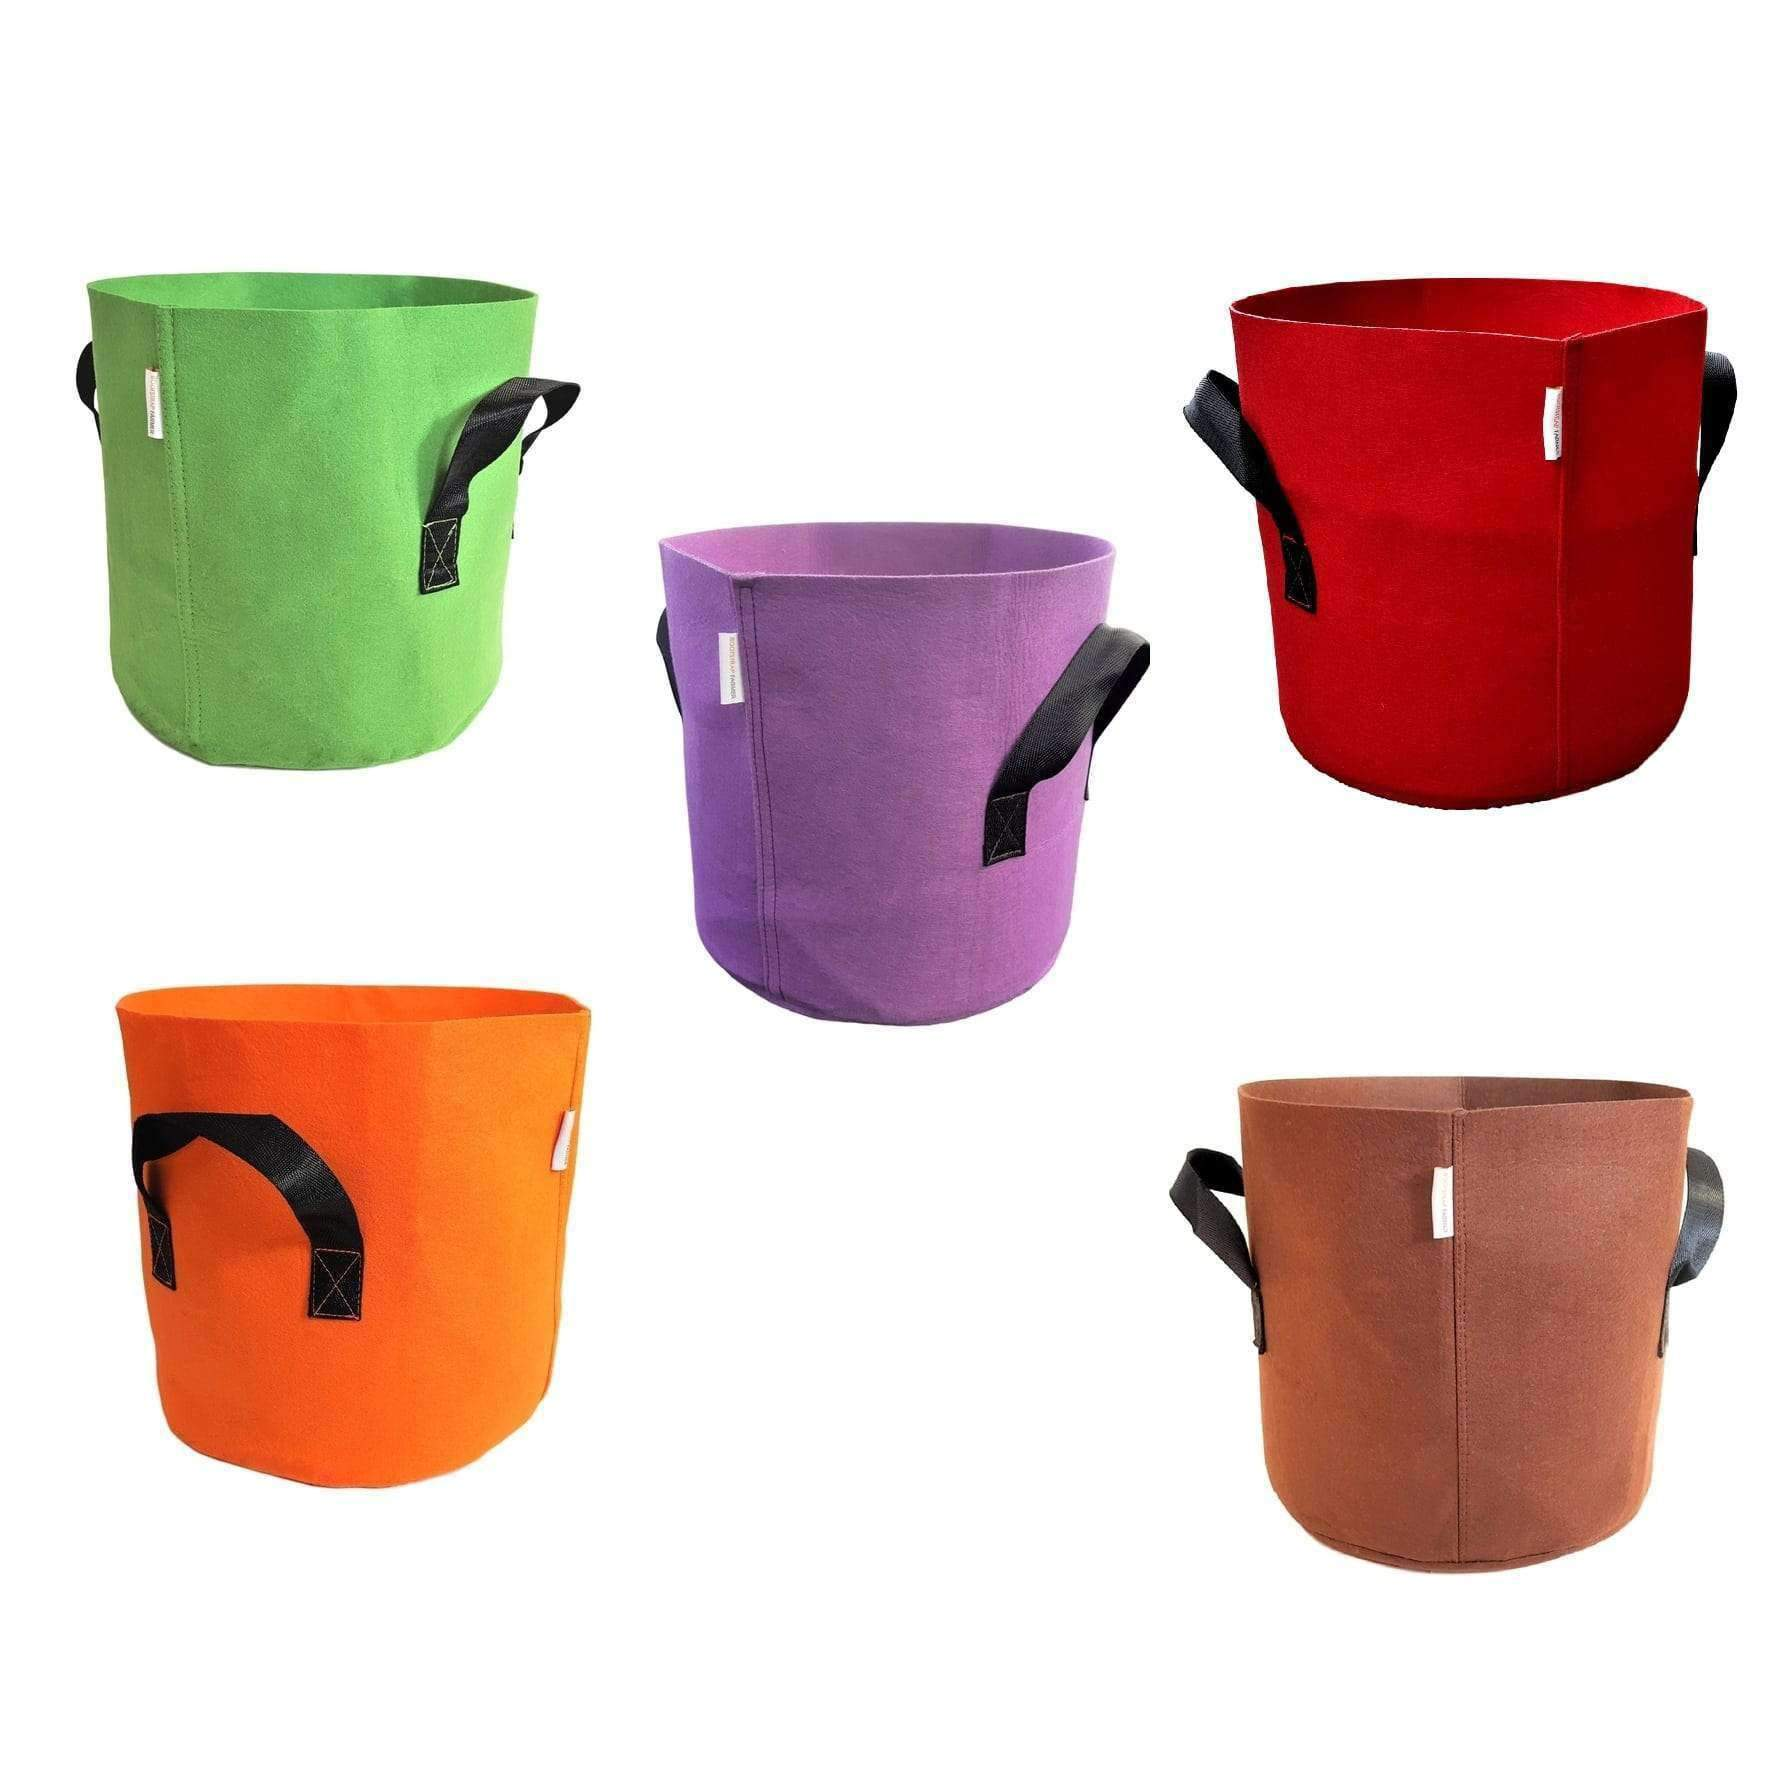 Bootstrap Farmer grow bags